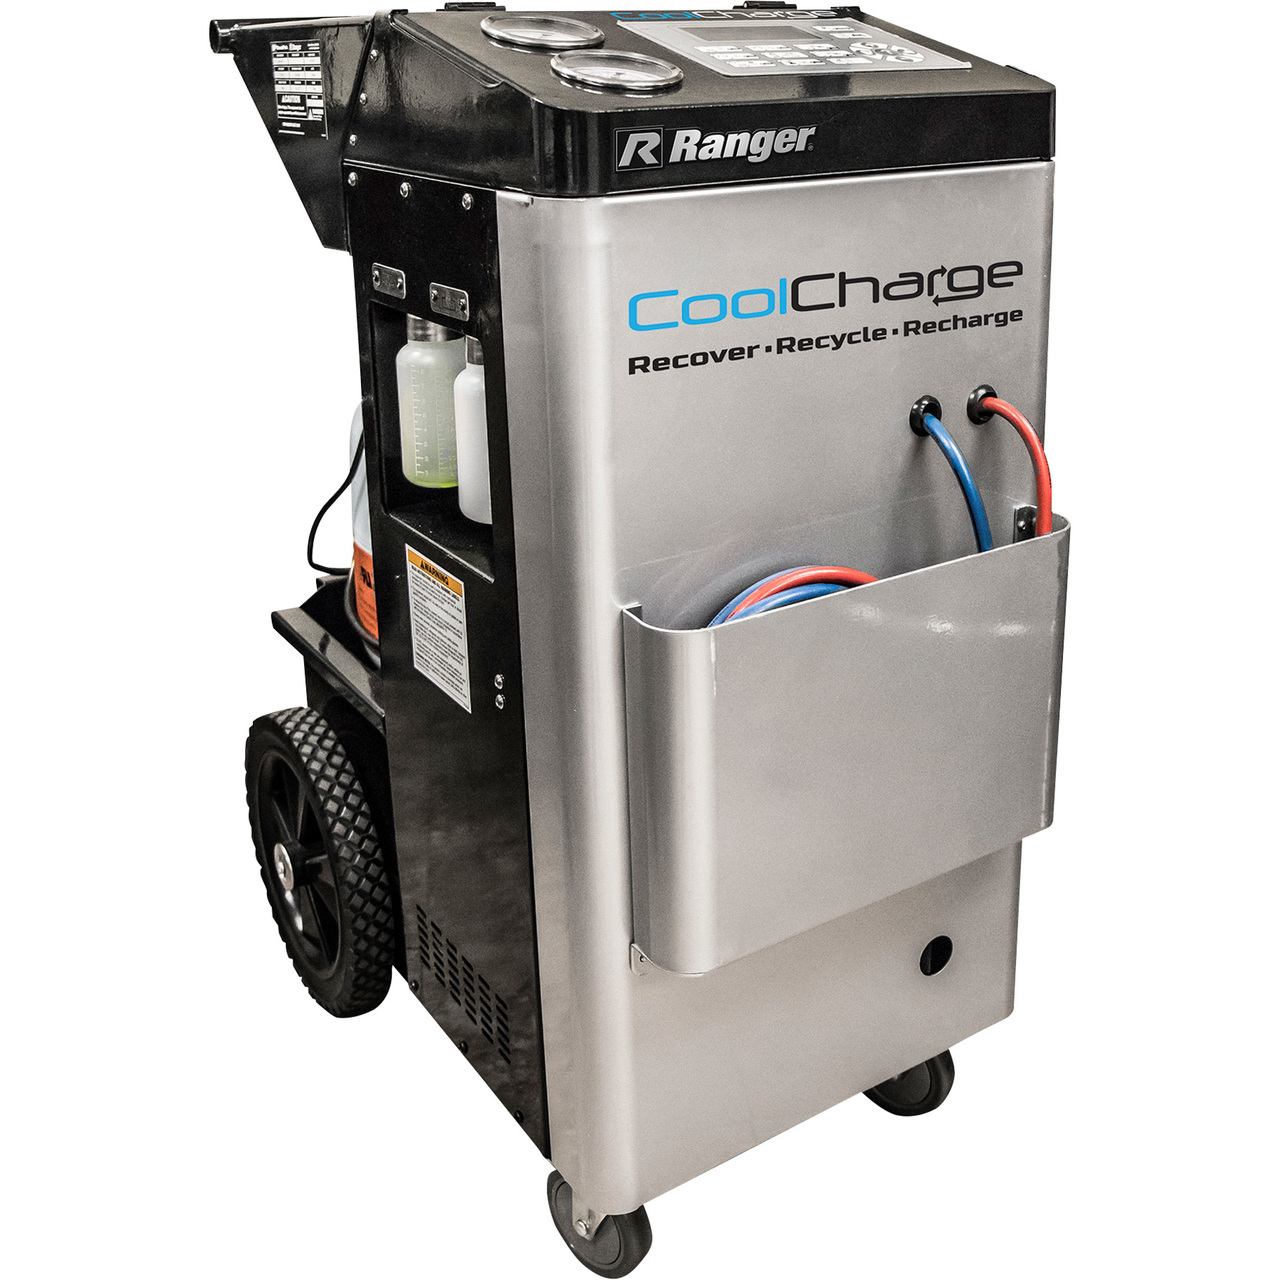 Ranger CoolCharge AC-134A R-134A Recovery, Recycling and Recharging Machine